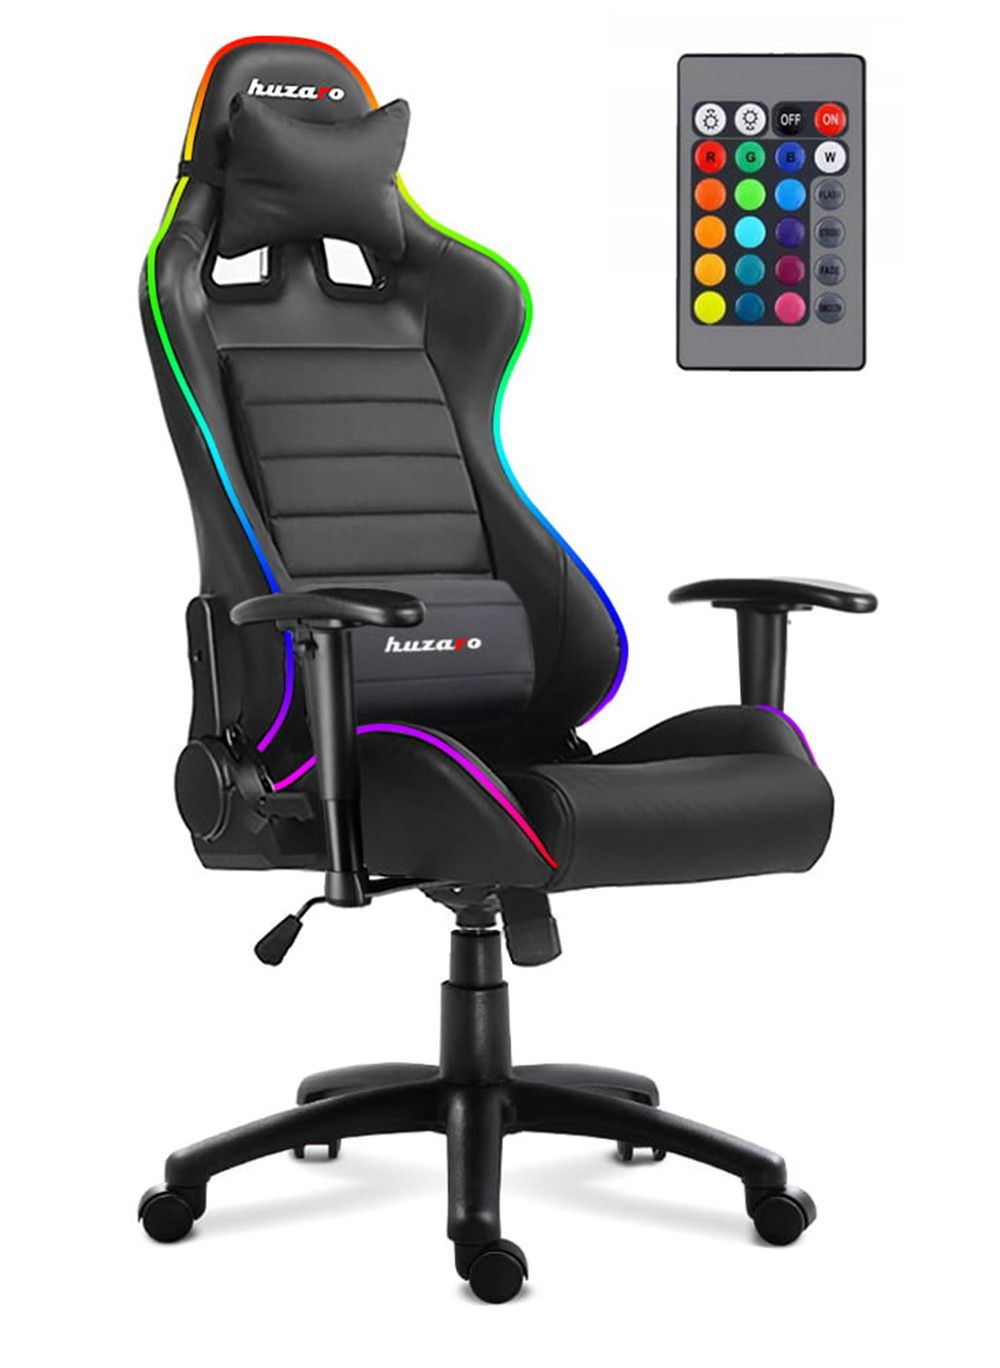 Best office gaming chair 2020